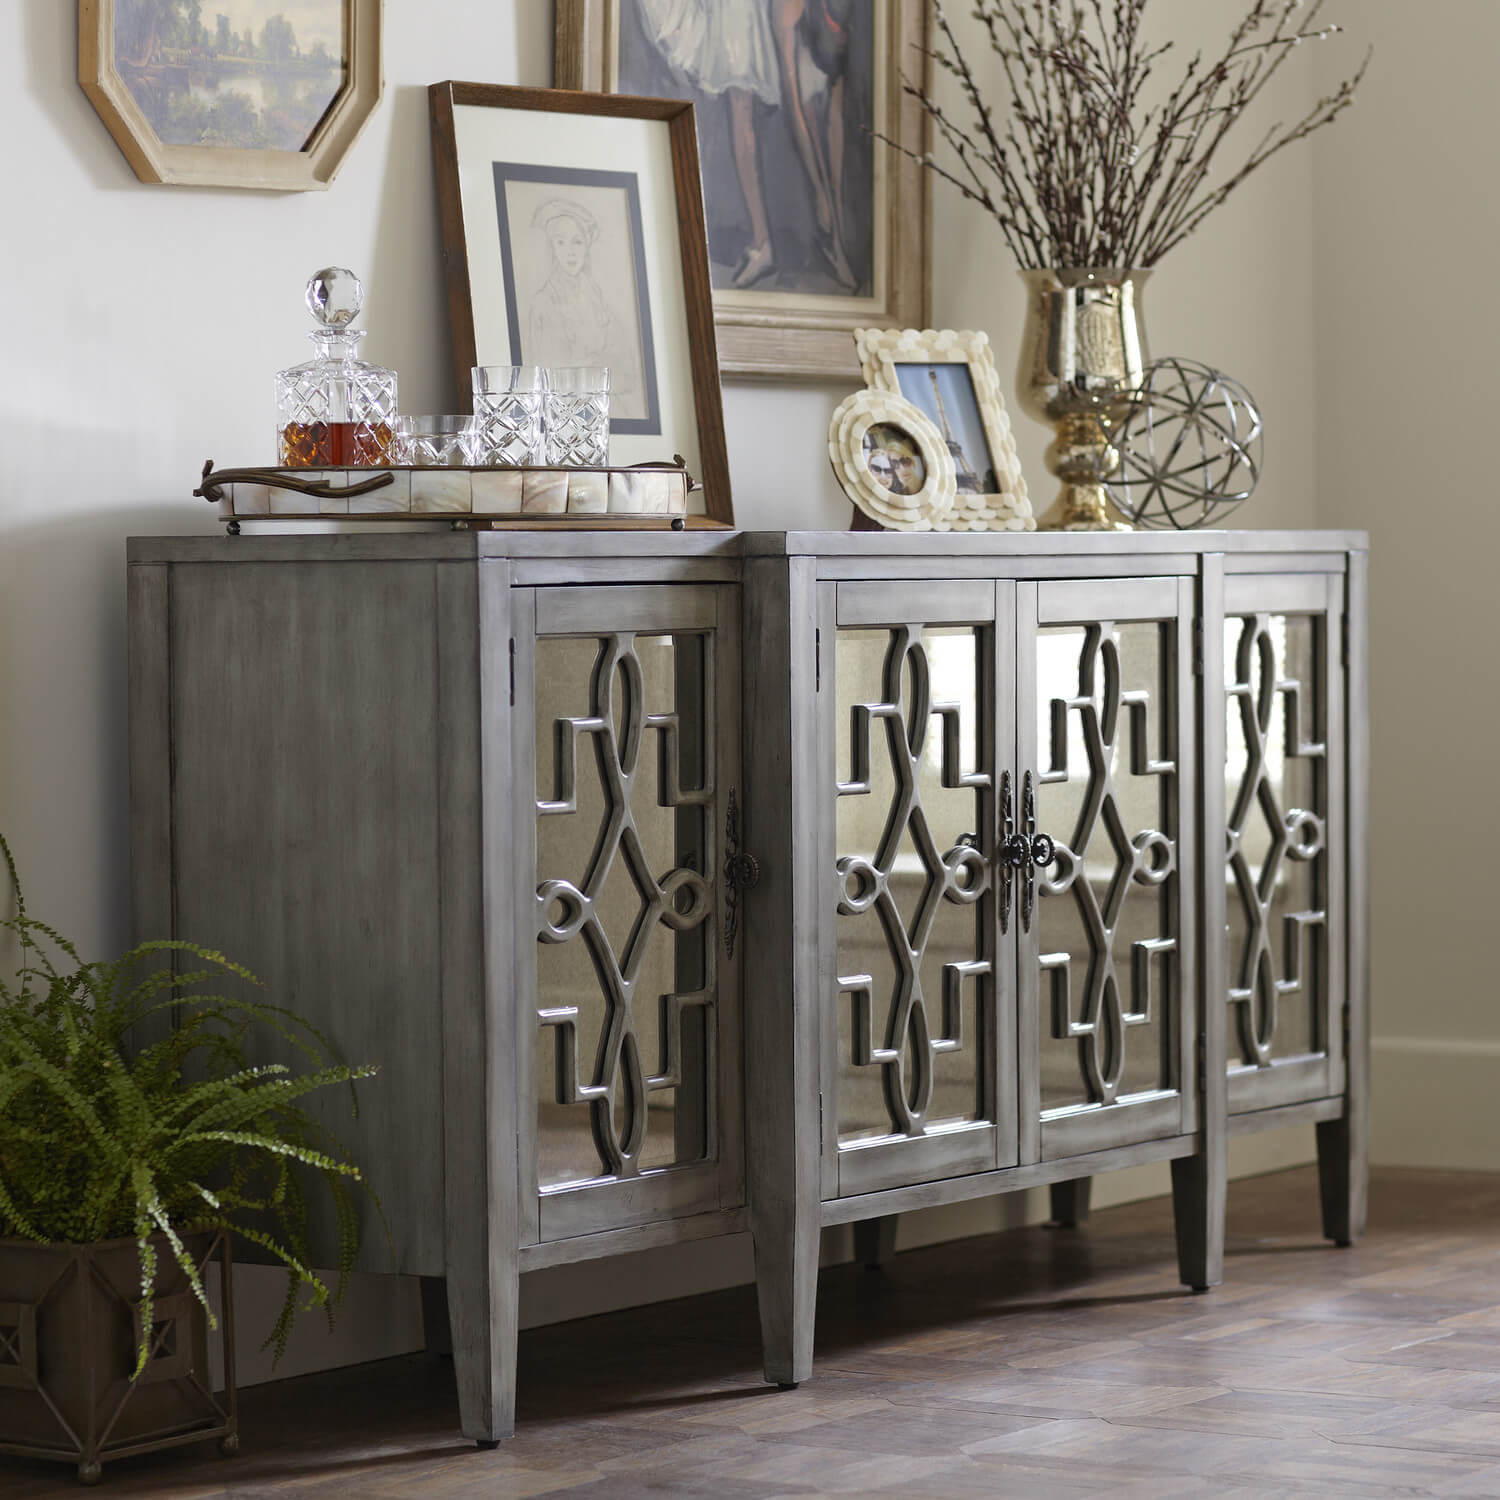 This credenza features a metallic front and an aged facade.